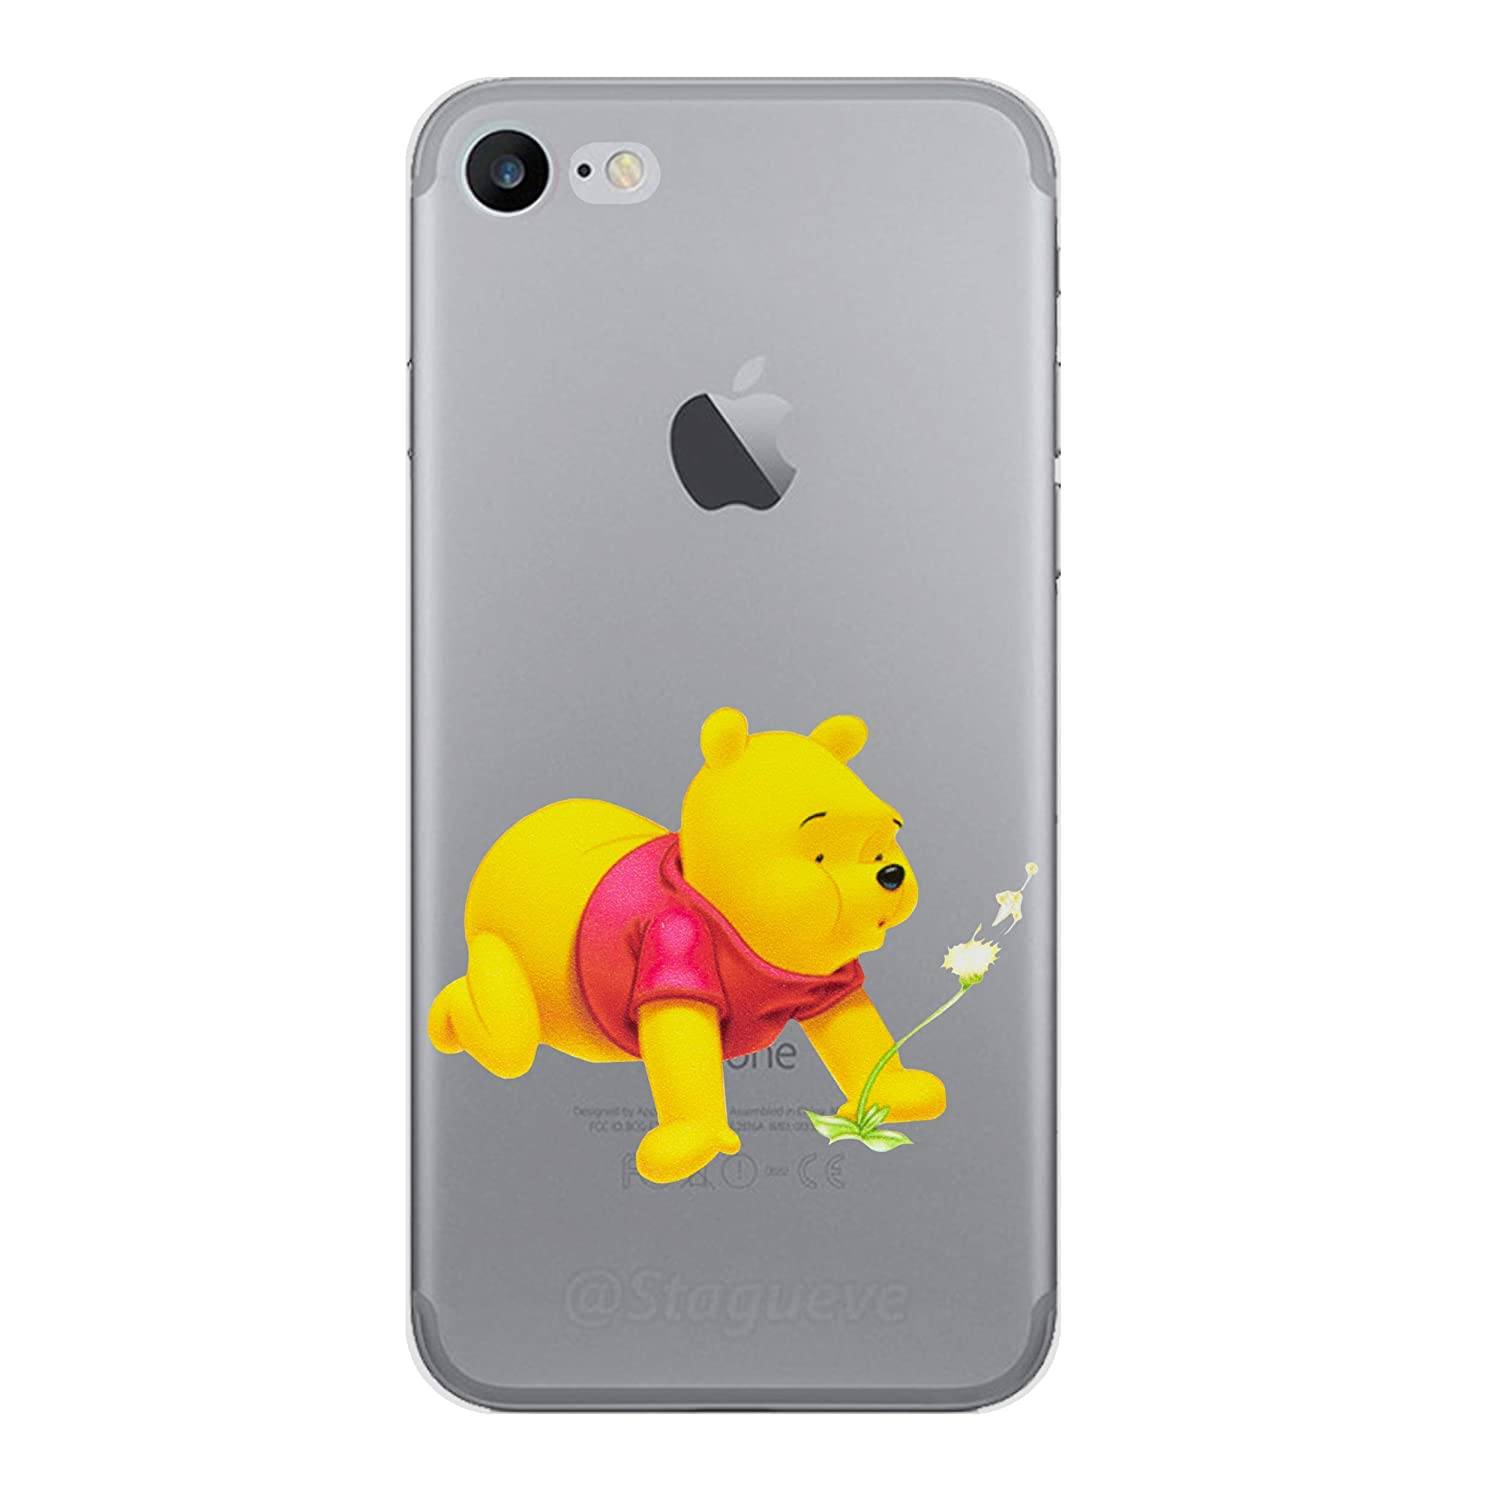 newest 48df1 1ecd5 iPhone 5/5s Winnie the Pooh Silicone Phone Case / Gel Cover for Apple  iPhone 5s 5 SE / Screen Protector & Cloth / iCHOOSE / Bend